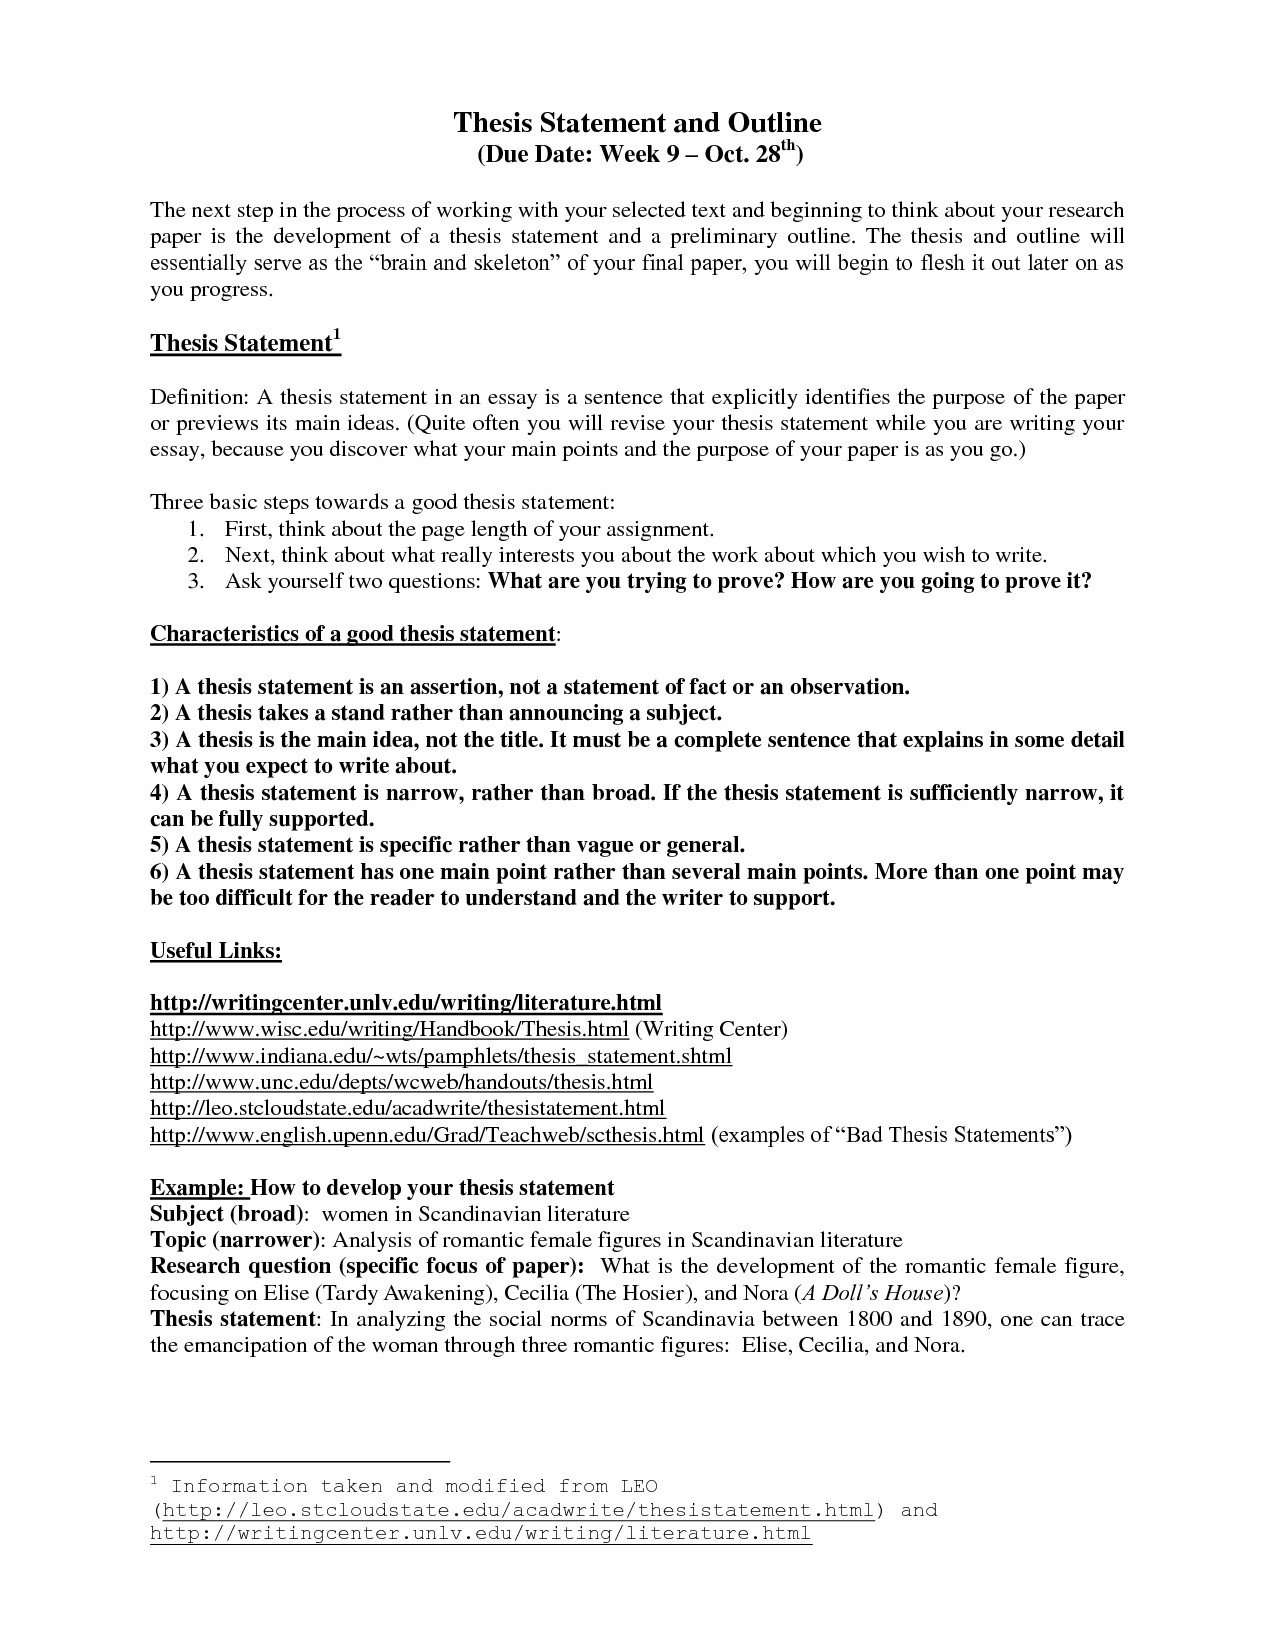 003 Essay Example Cute Easy Thesis Statement Examples Pics For Your Argumentative Writing Structure How To Write Of On Independence Day Tips Topics Website Pollution Grammar Checker Frightening An Effective In Must I Present Both Sides The Issue Brainly Full